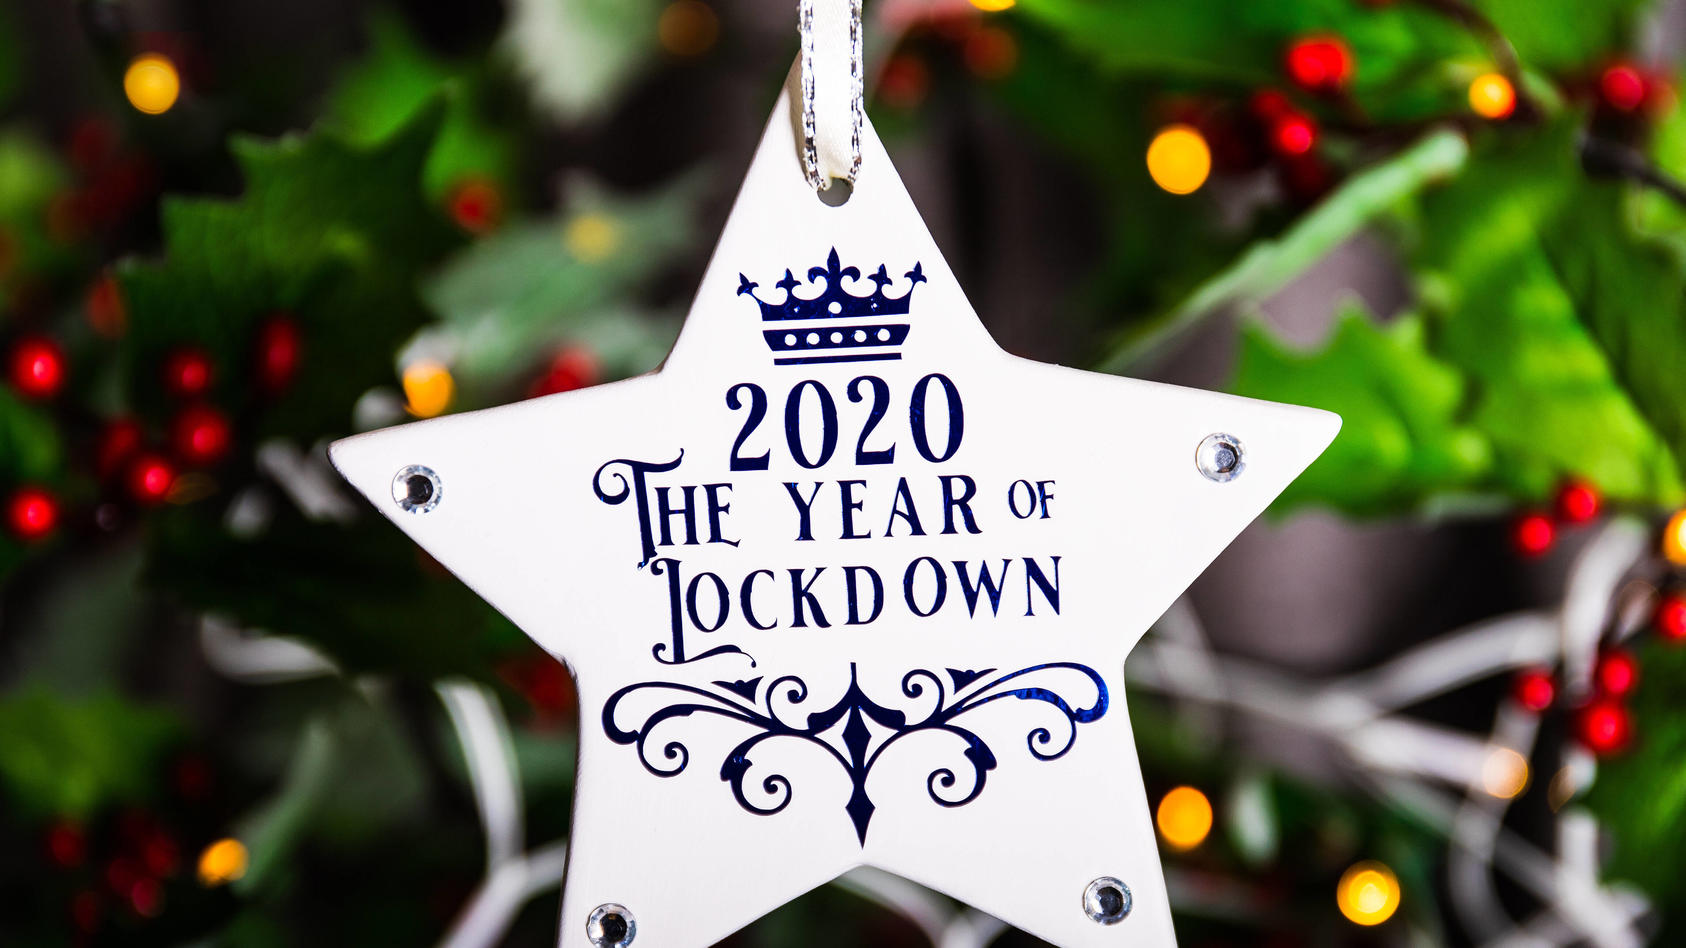 Coronavirus - Mon Nov 9, 2020 A general view of a Christmas decoration that says 2020 The Year of Lockdown hanging on a